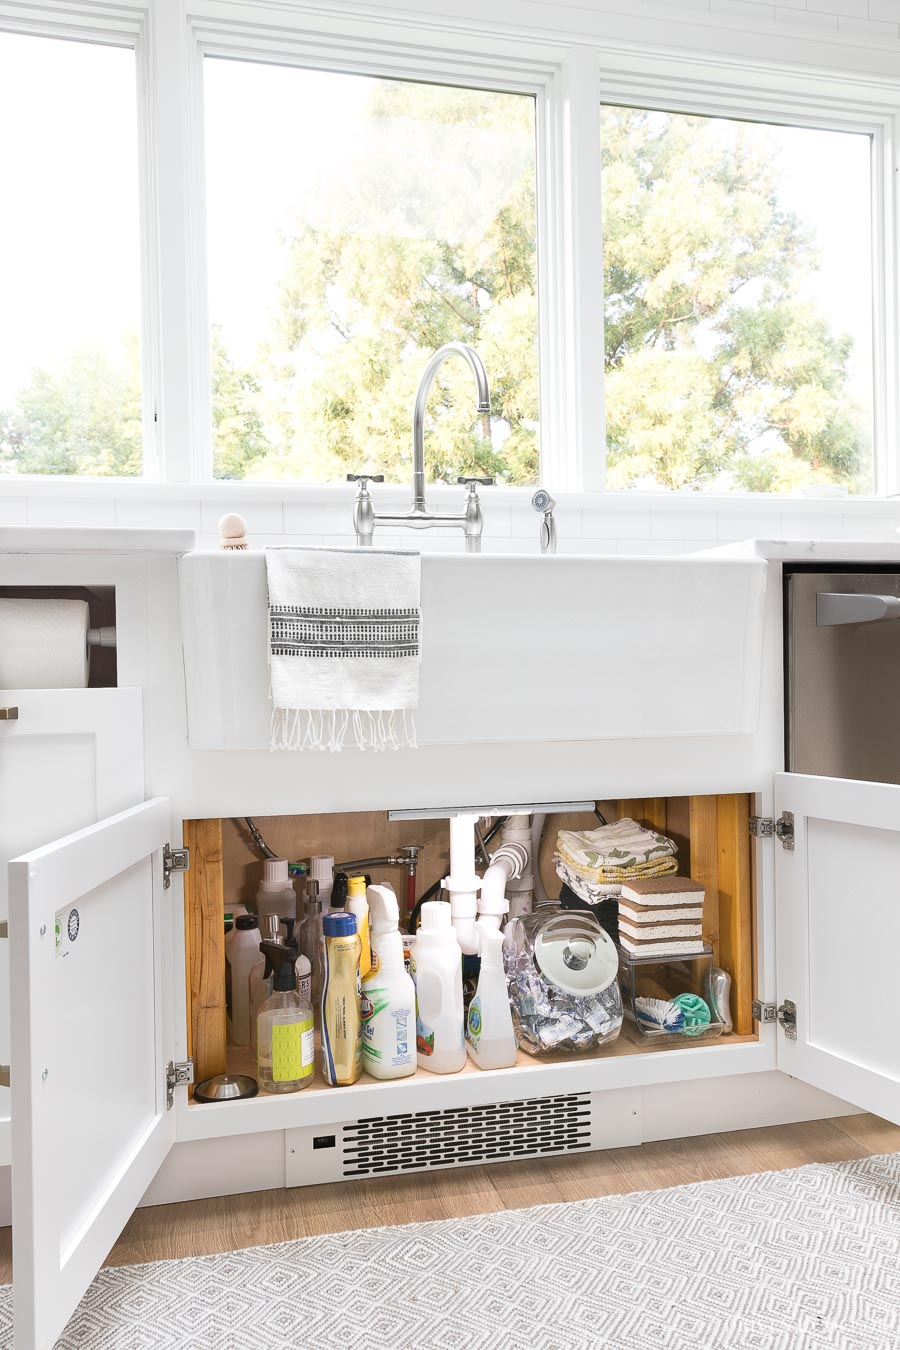 Love this idea for lighting up the inside of a cabinet! Install motion strip lighting so when the doors of the cabinet are opened, the battery-operated light illuminates what's inside! Perfect for under the sink!